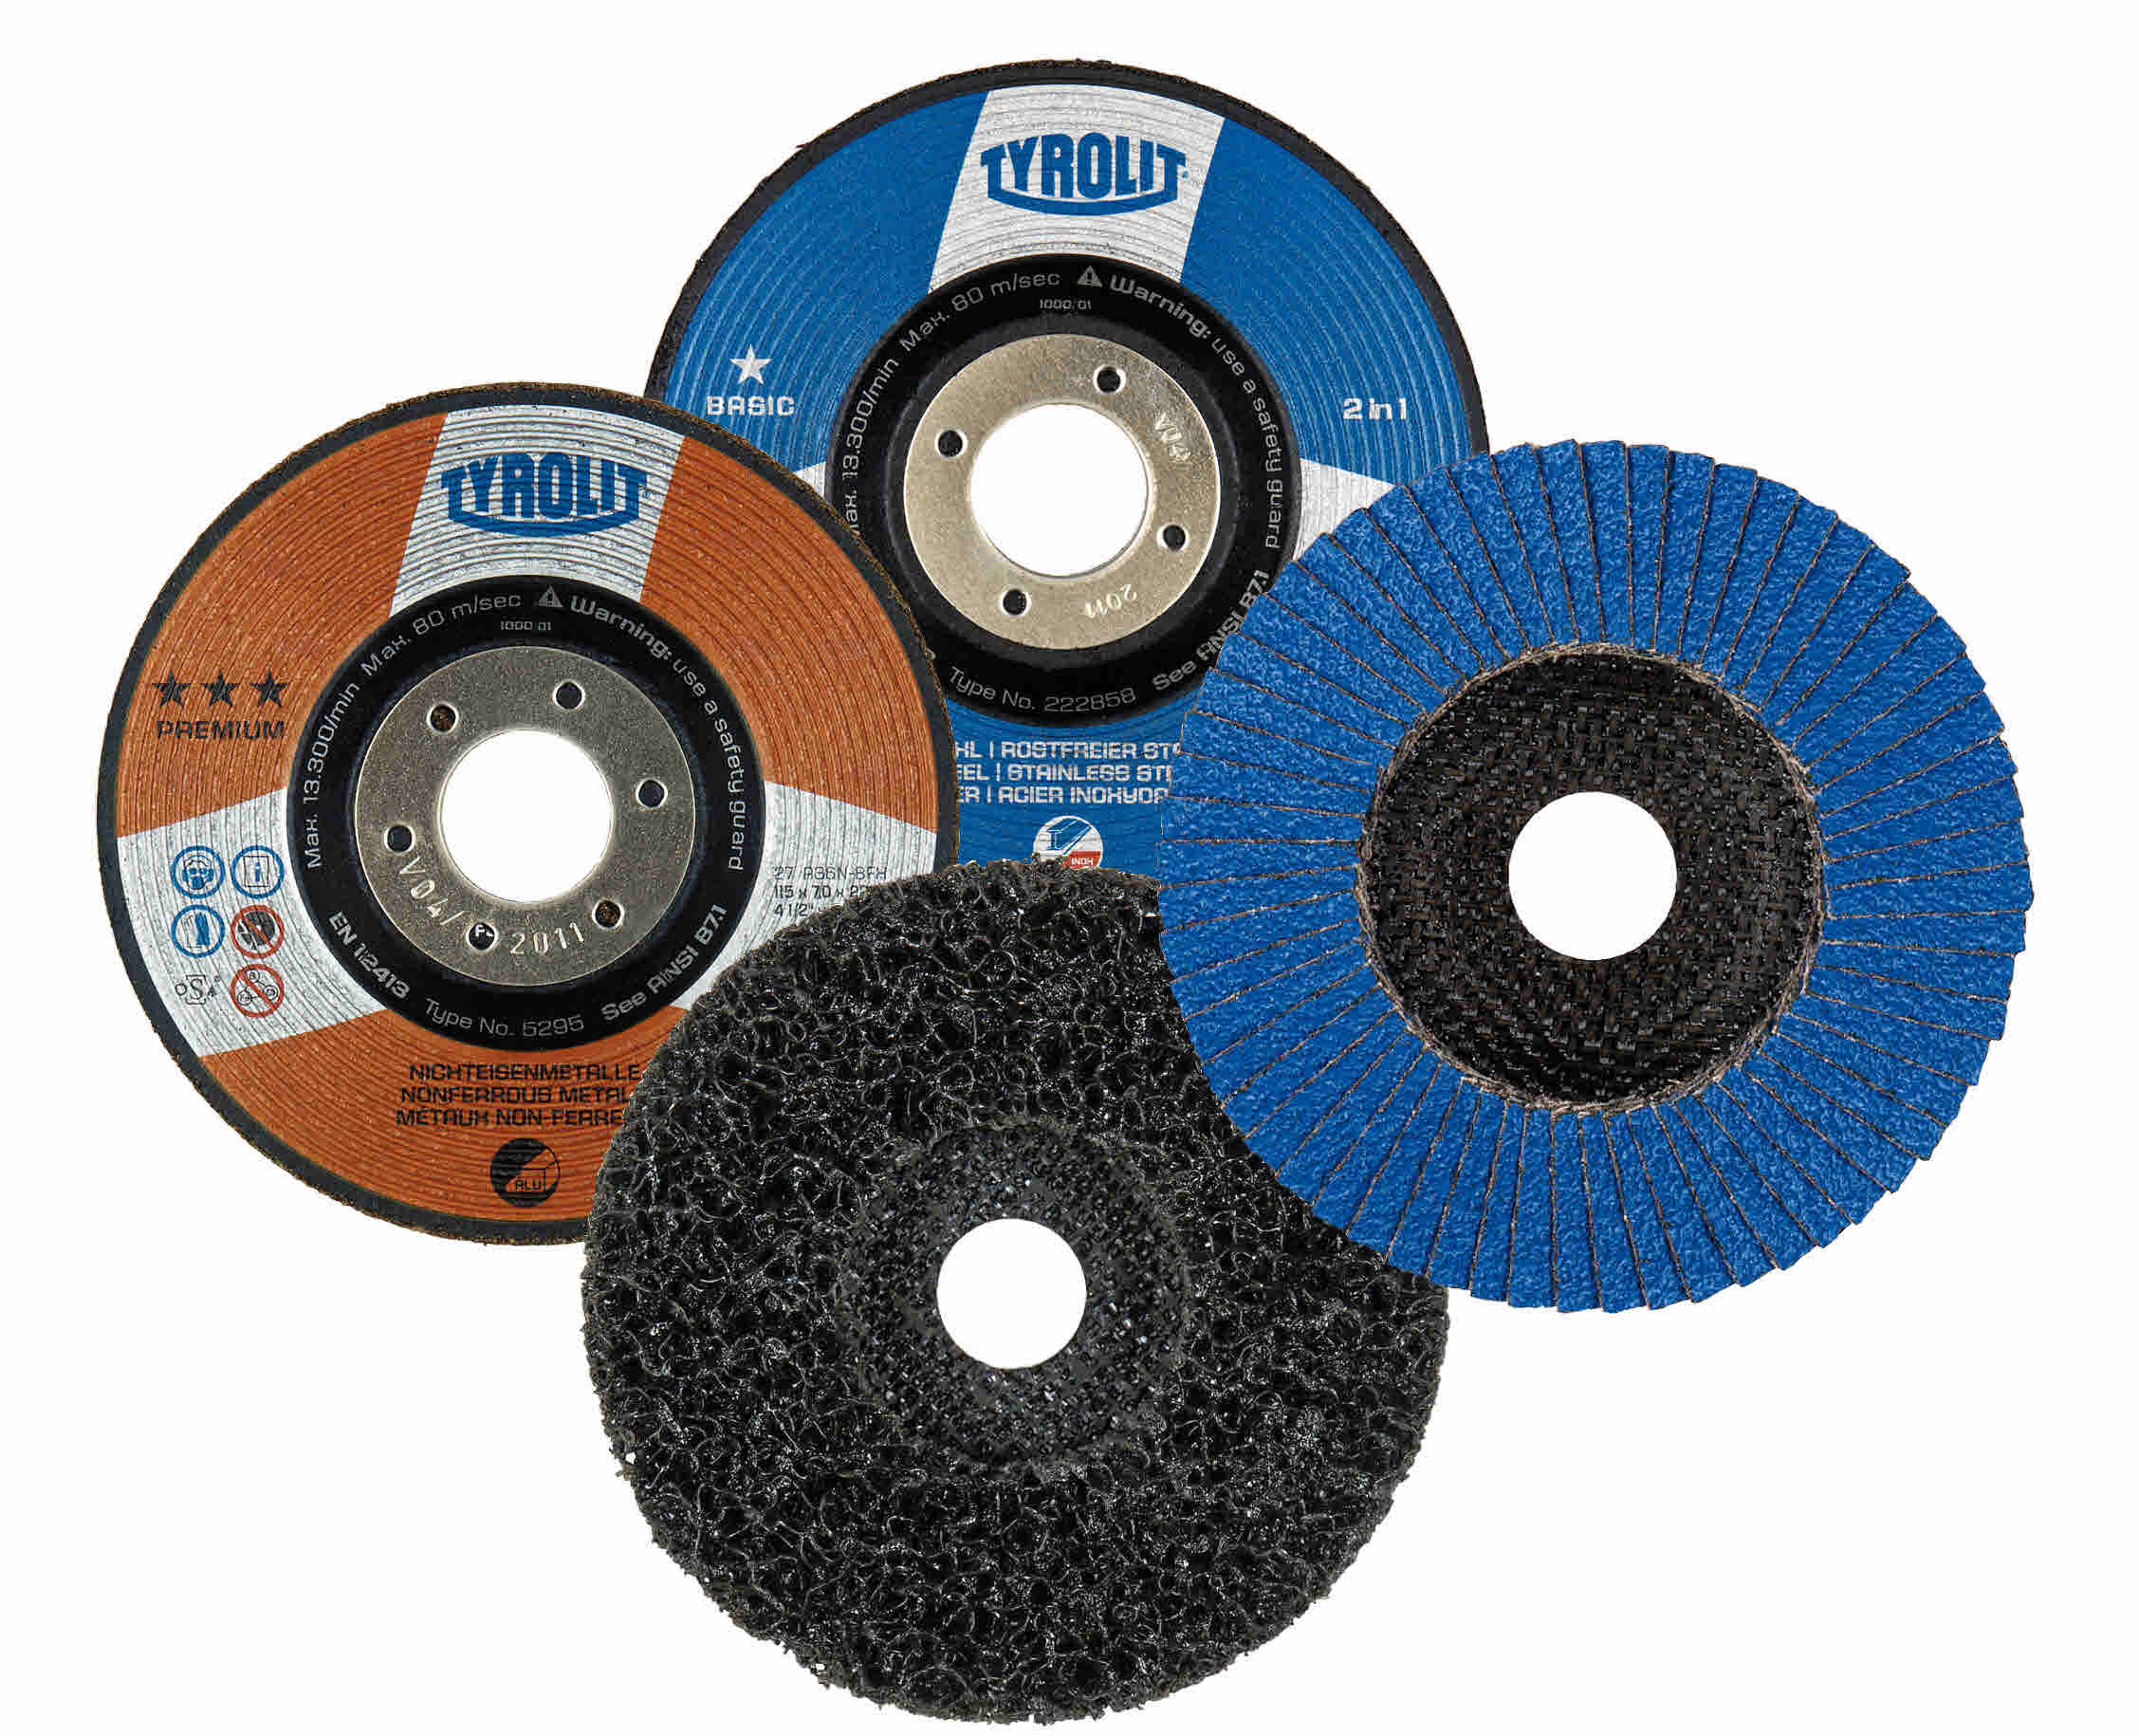 Sanding Polishing Grinding And Cutting Set For Metals 24 Discs